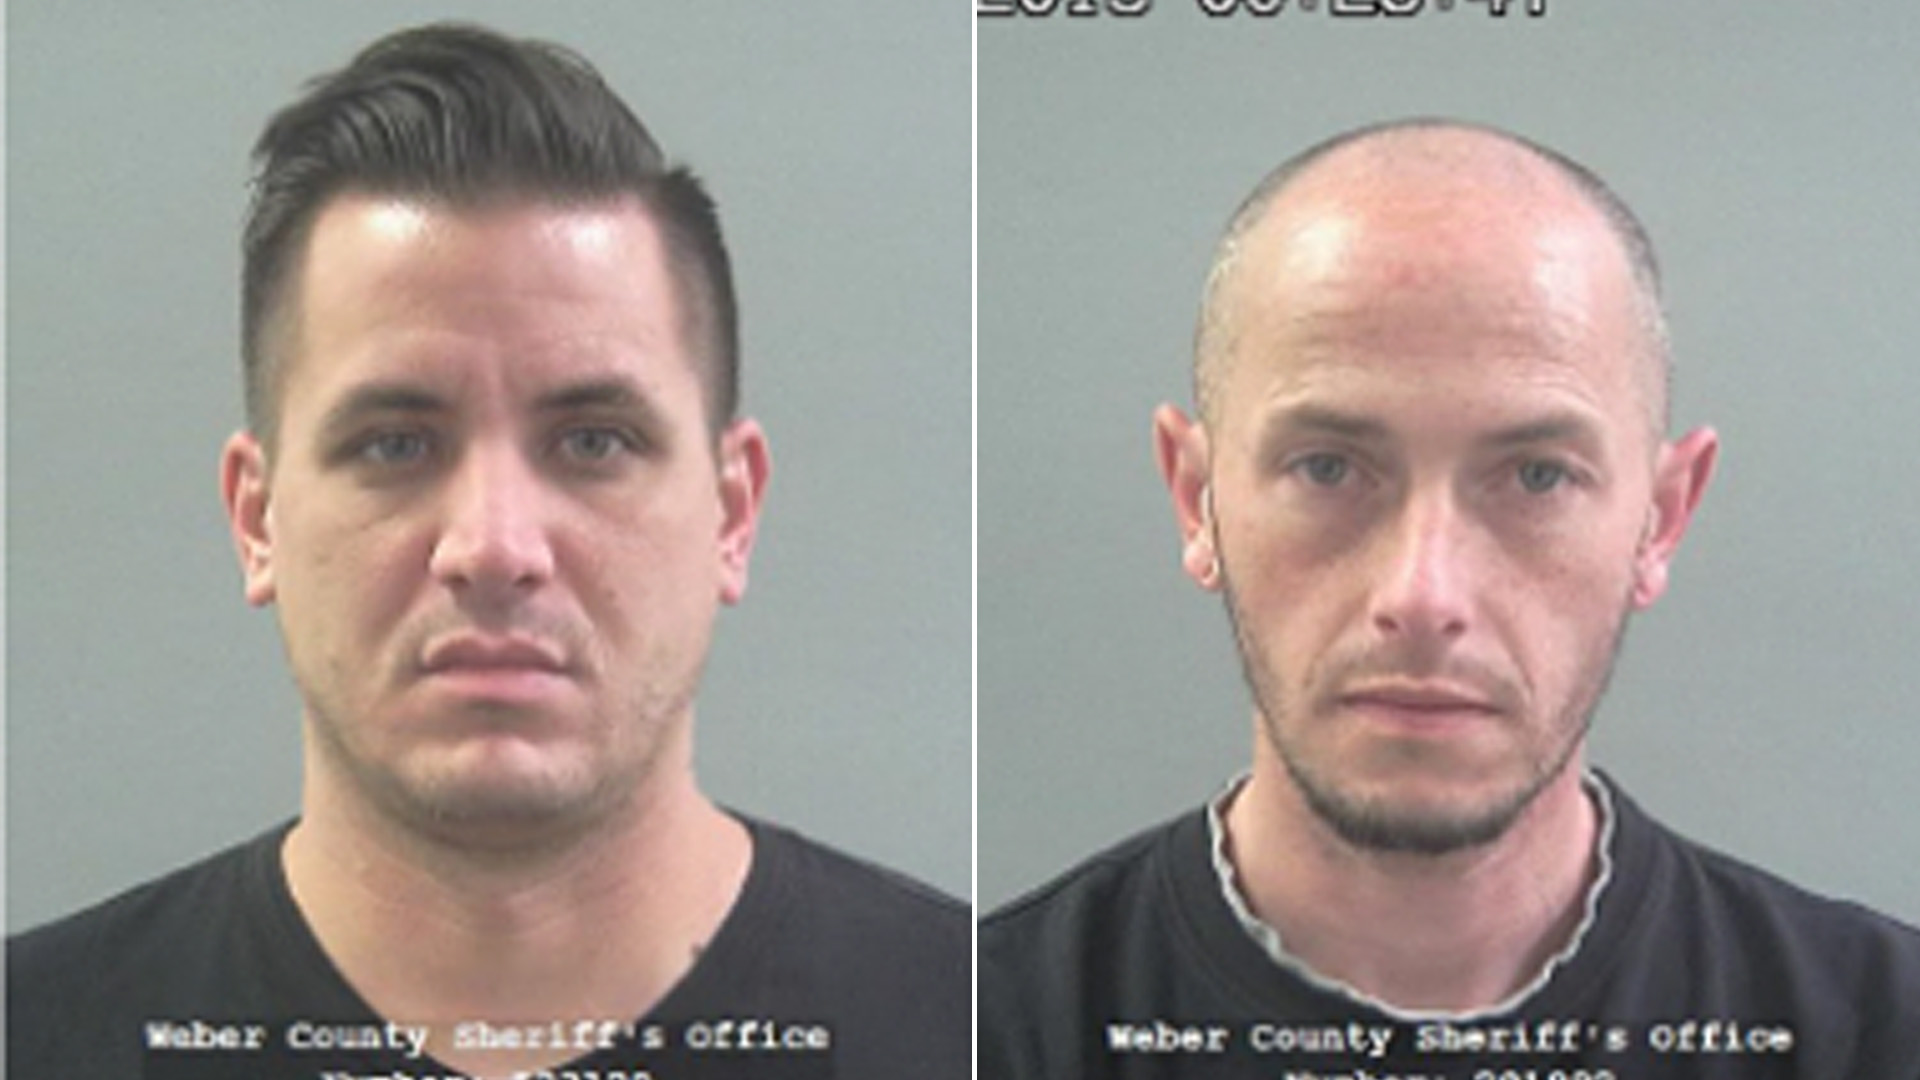 Kaleb Wiewandt, left, escaped from Weber County Jail on Feb. 25, 2020, after posing as Matthew Belnap, right.(Weber County Sheriff's Office)